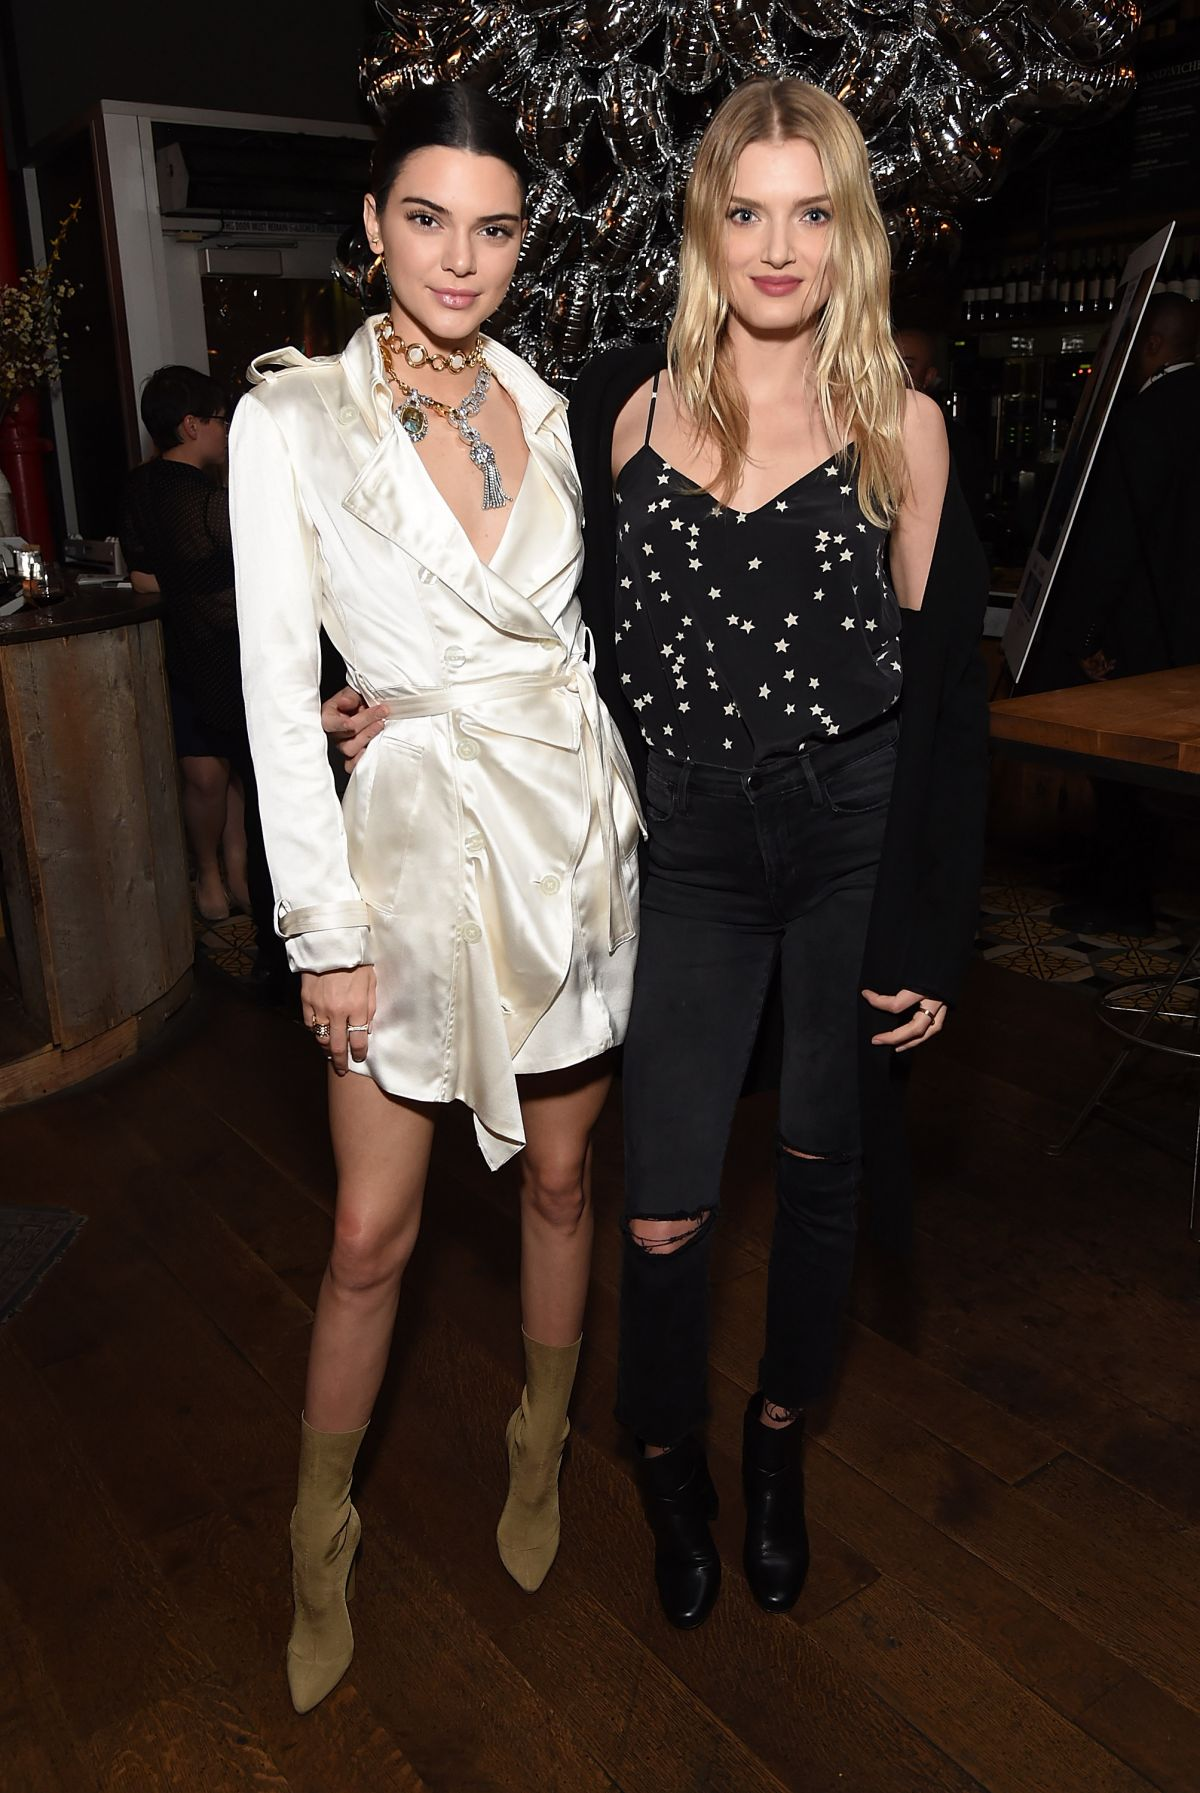 LILY DONALDSON and KENDALL JENNER at Valerian and the City of a Thousand Planets Premiere in Los Angeles 03/27/2017